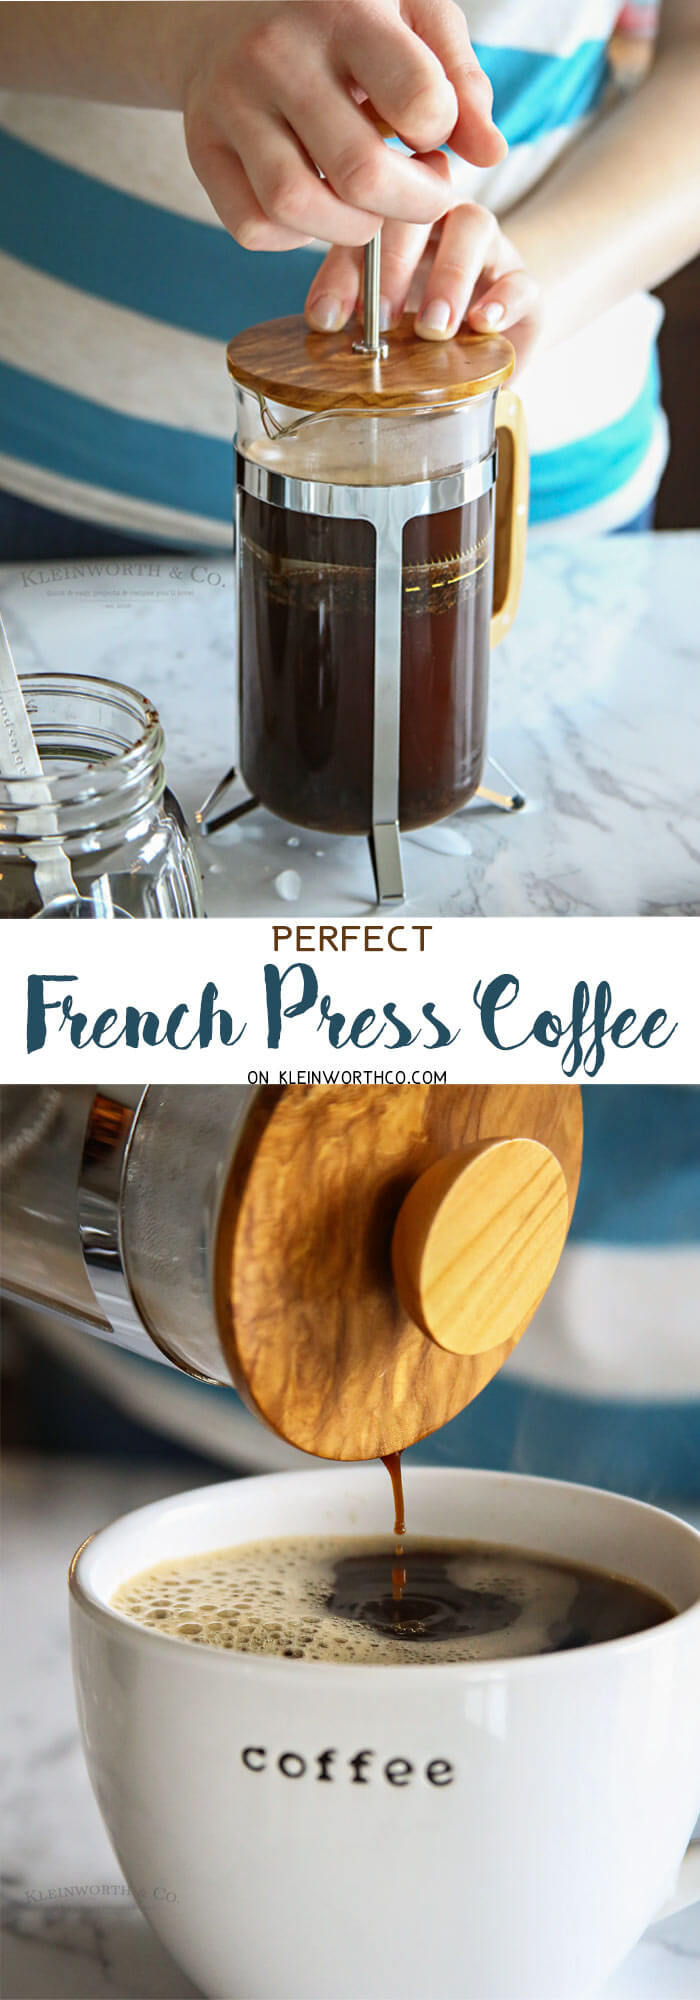 Perfect French Press Coffee with Bulletproof Coffee